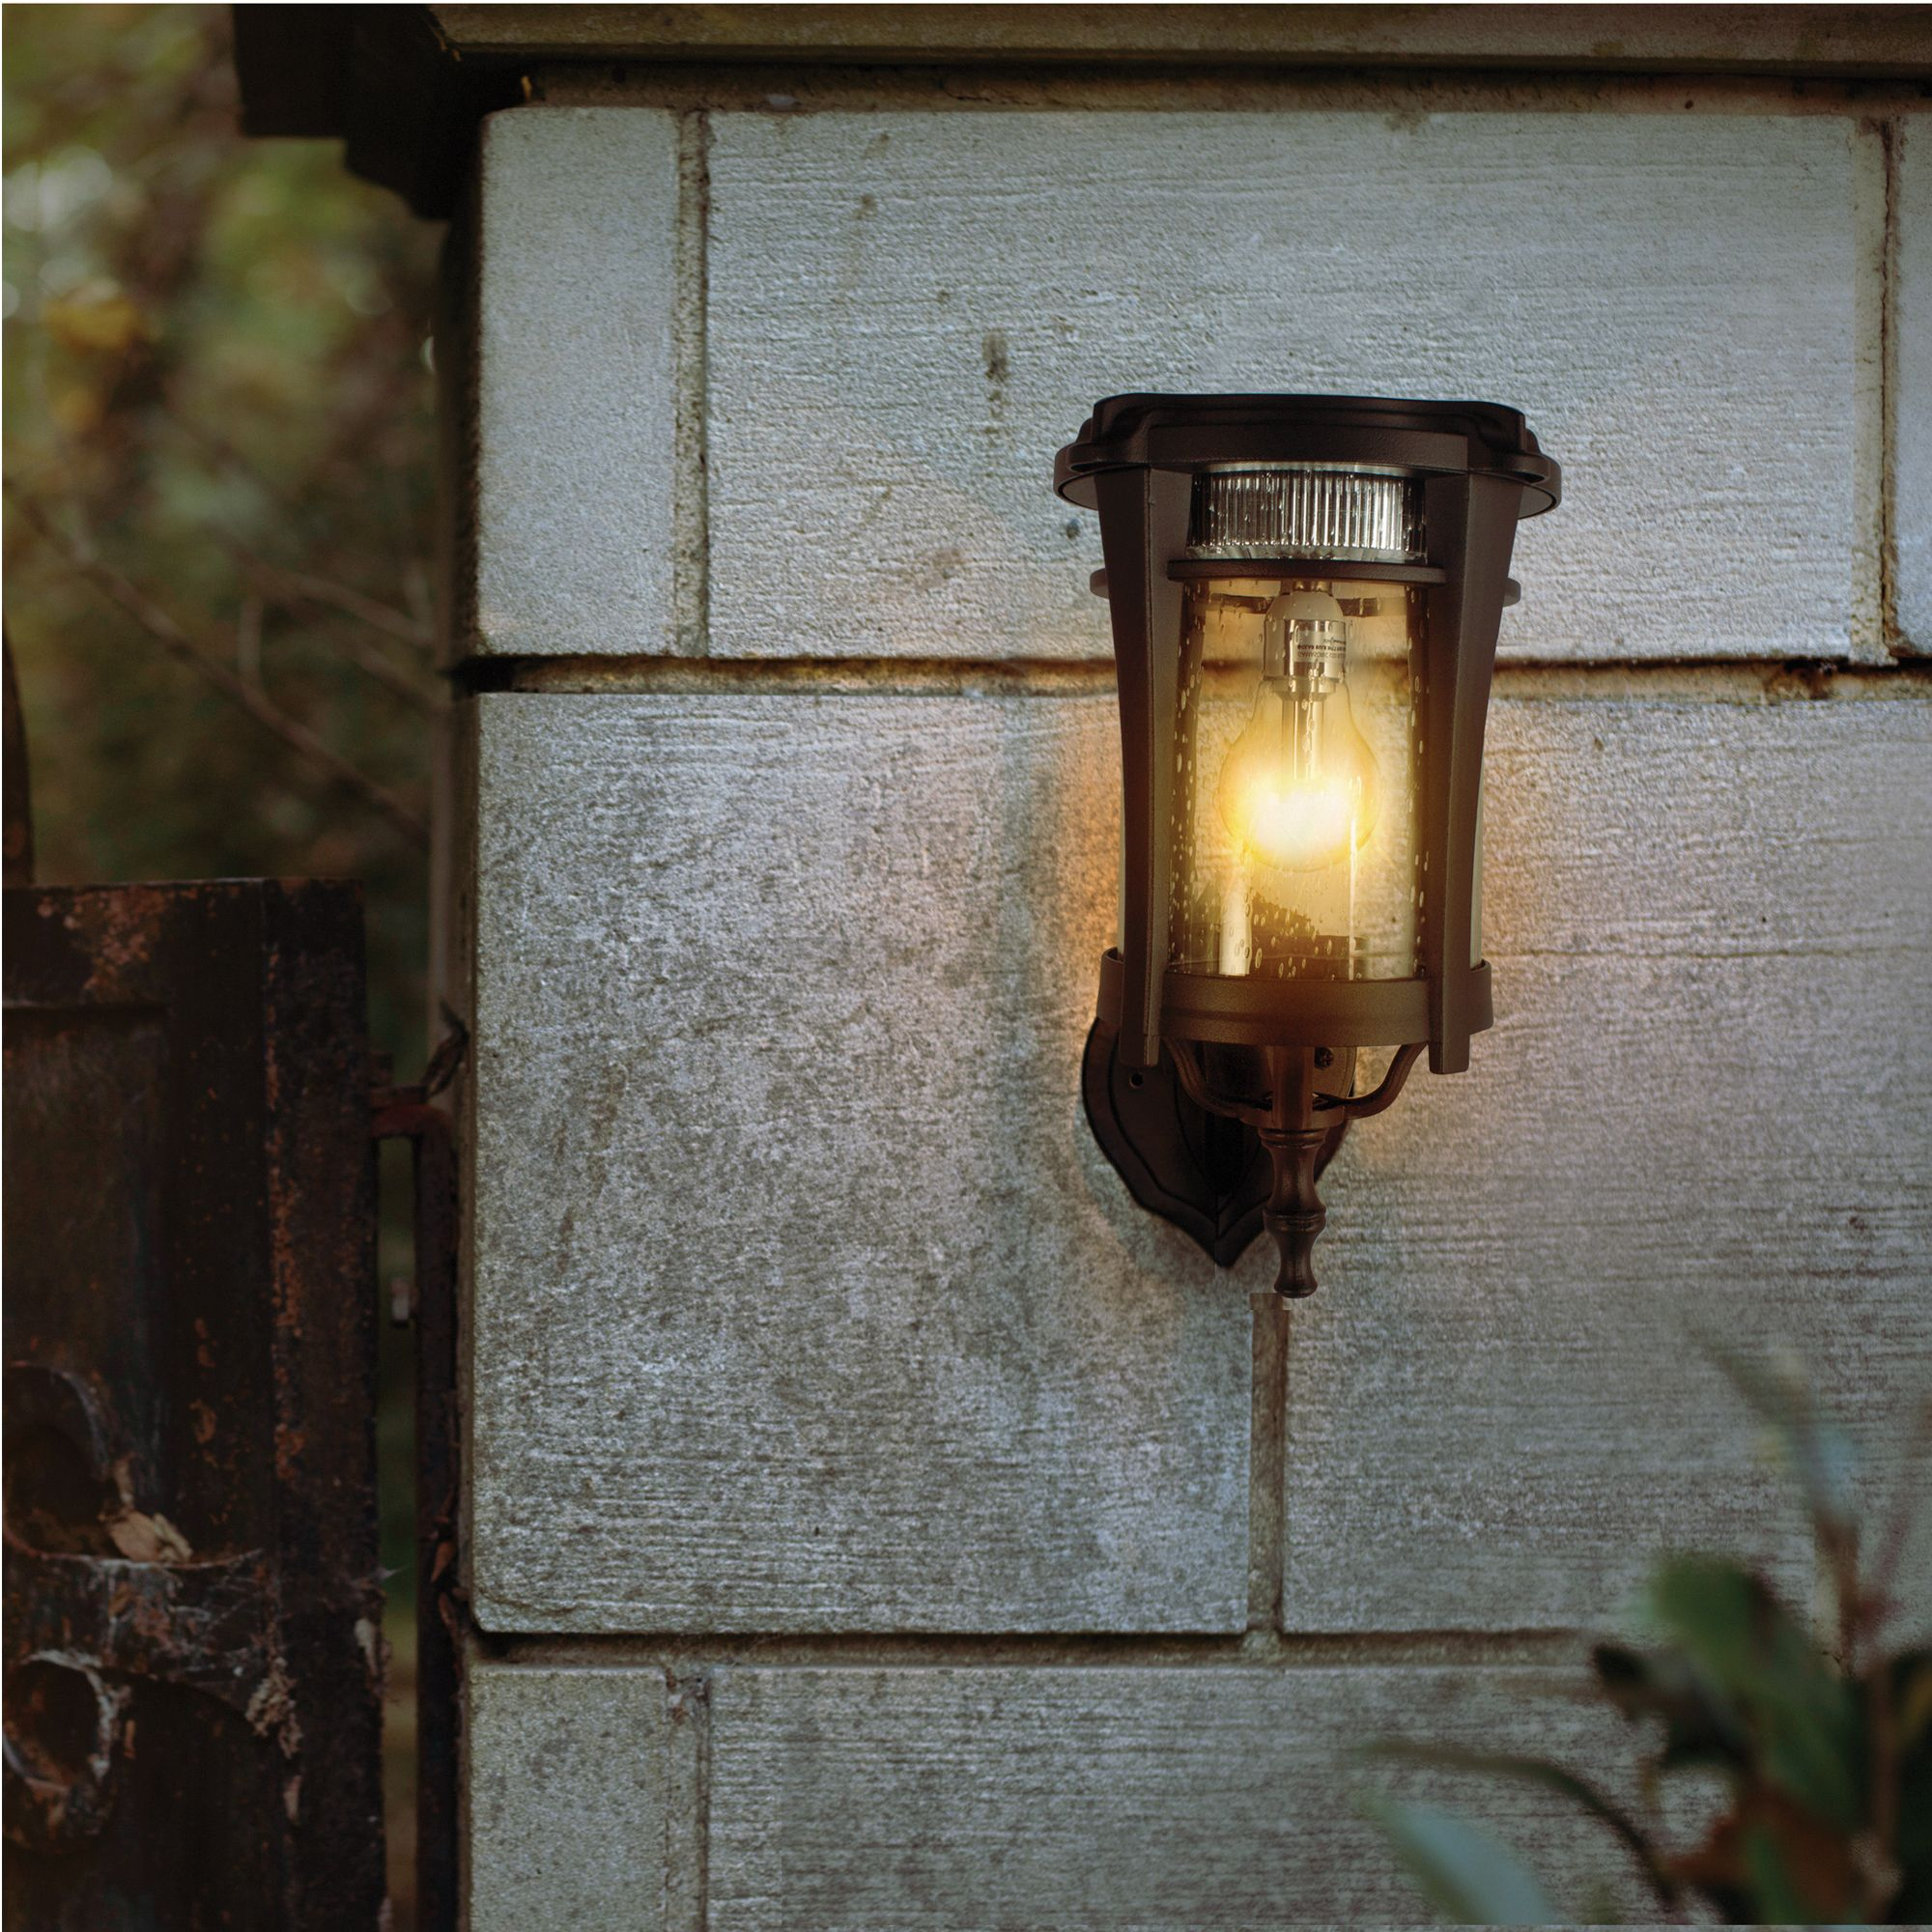 Our Favorite Outdoor Solar Lights Wall Lights Solar Wall Lights Solar Post Lights Solar powered wall mounted lights